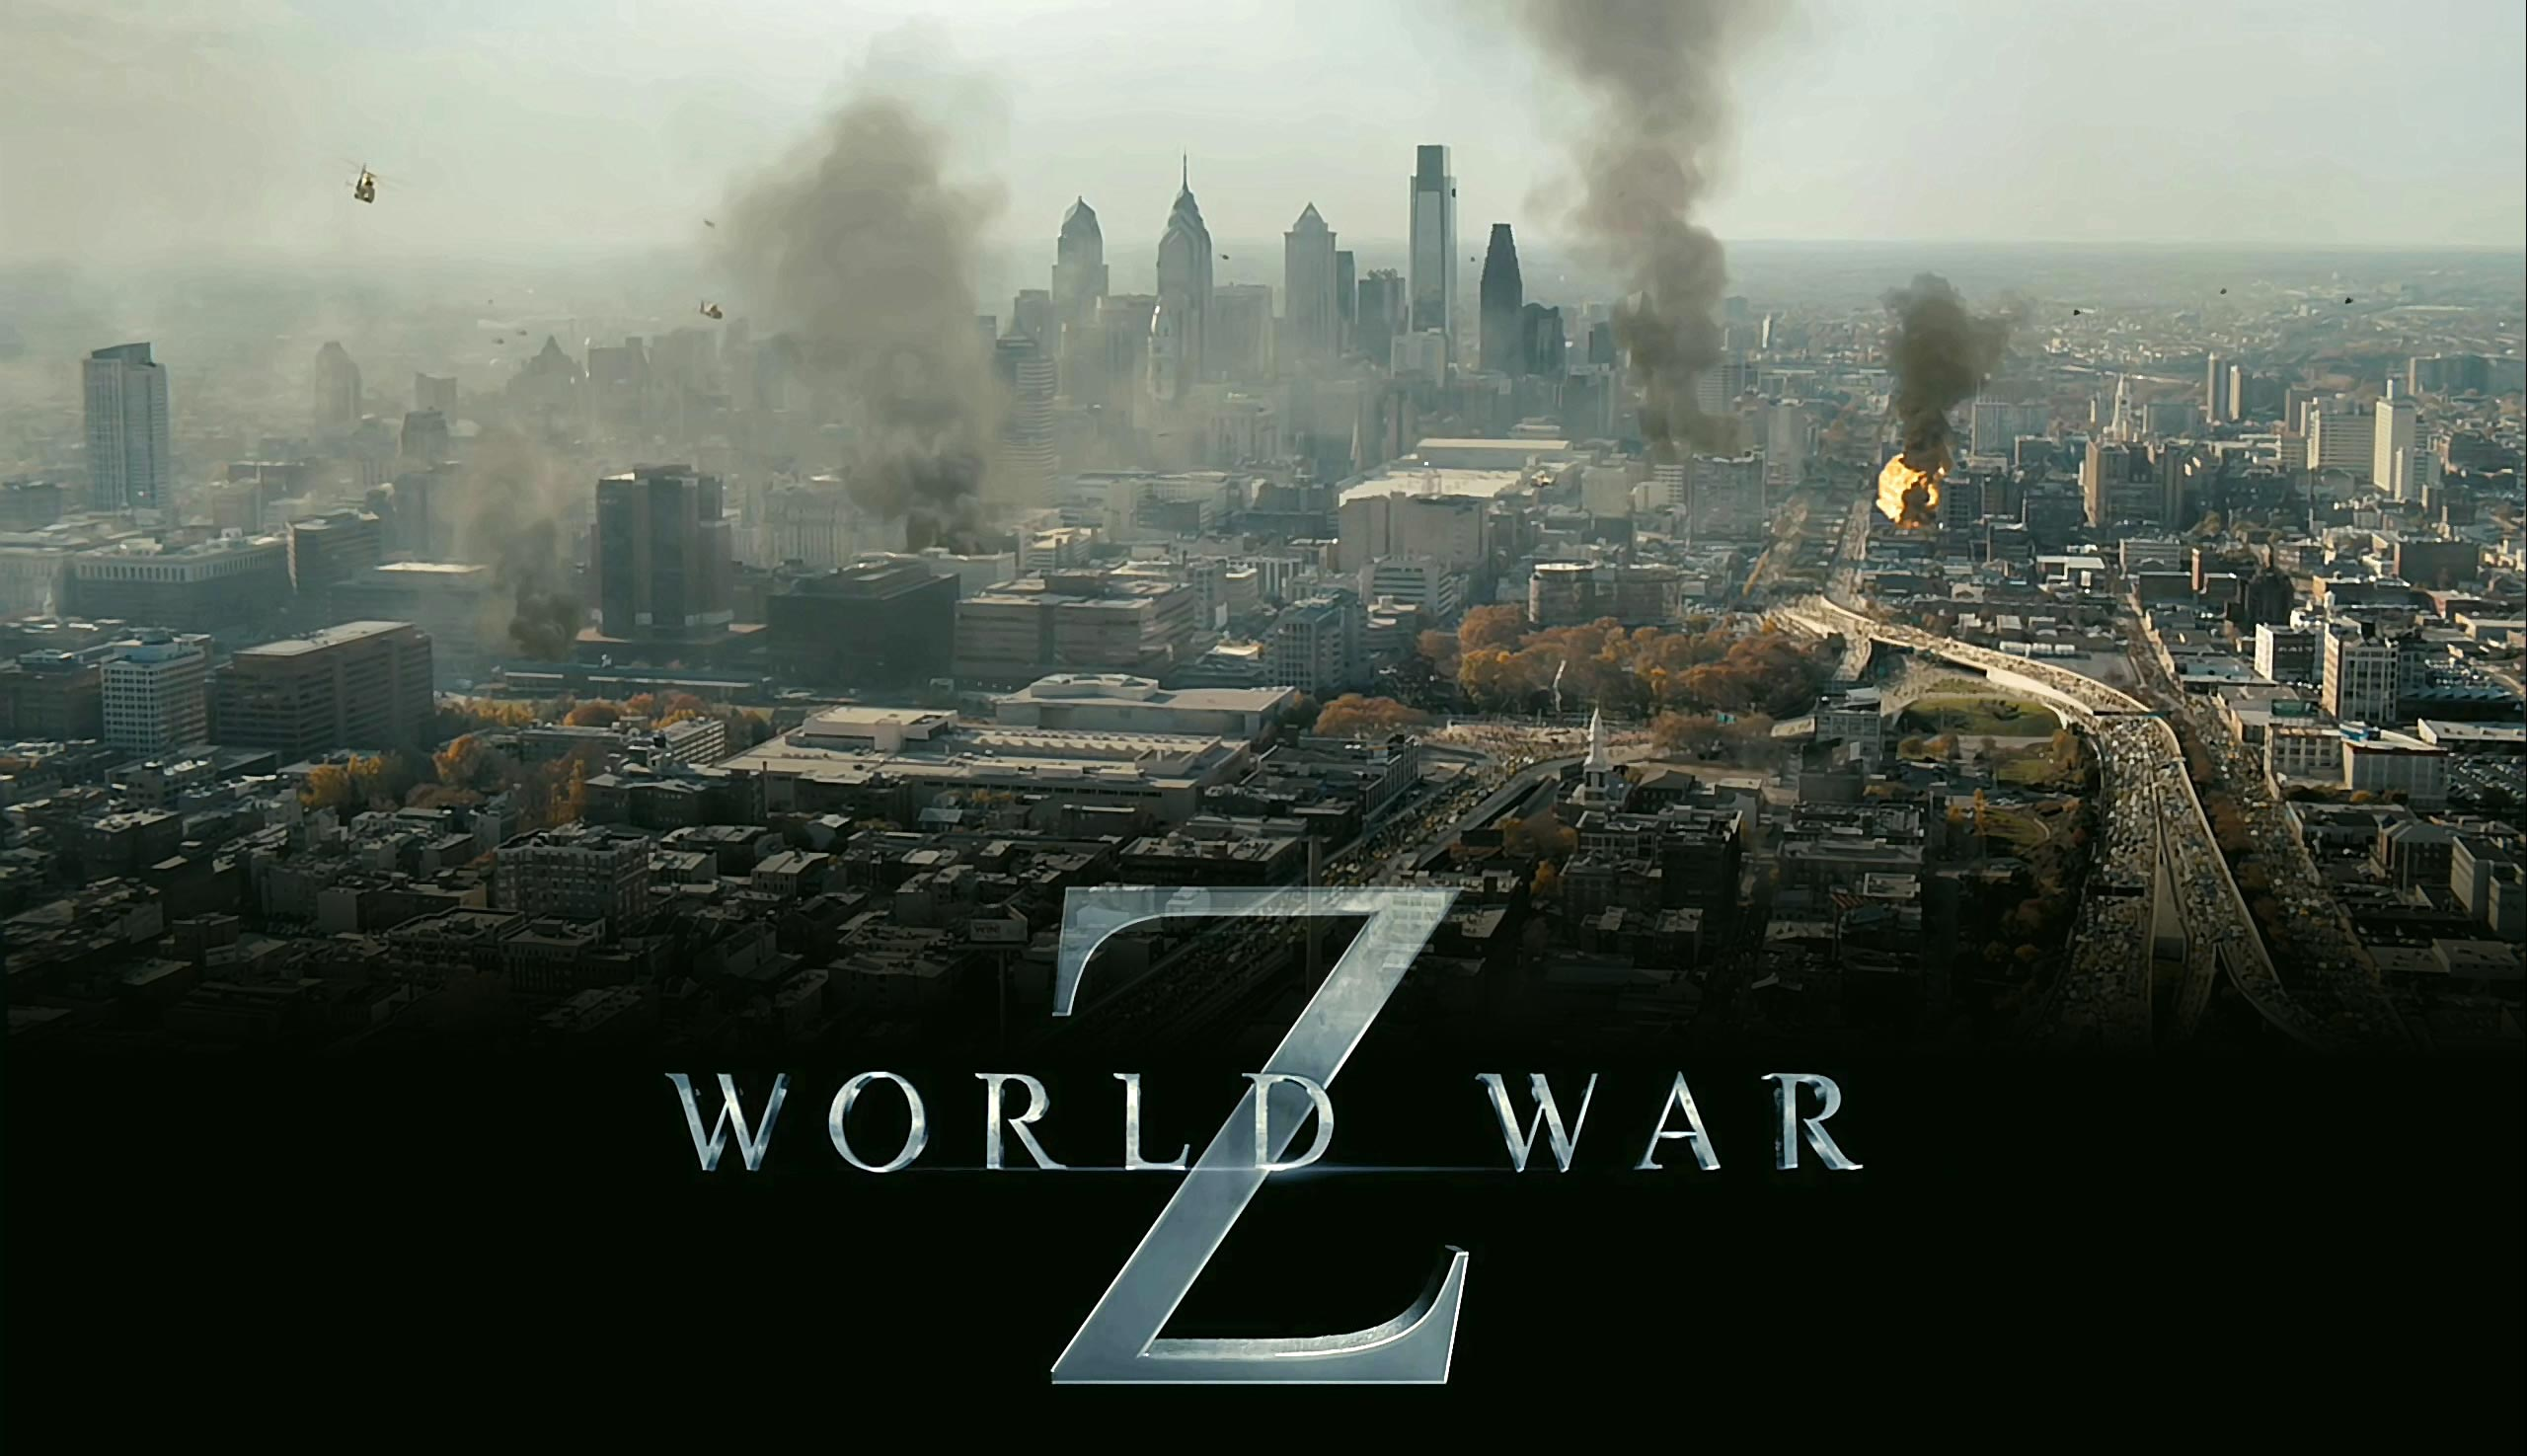 """""""WORLD WAR Z"""" PREMIERES IN LONDON, MUSE TO PERFORM LIVE ON SUNDAY, JUNE 2ND"""